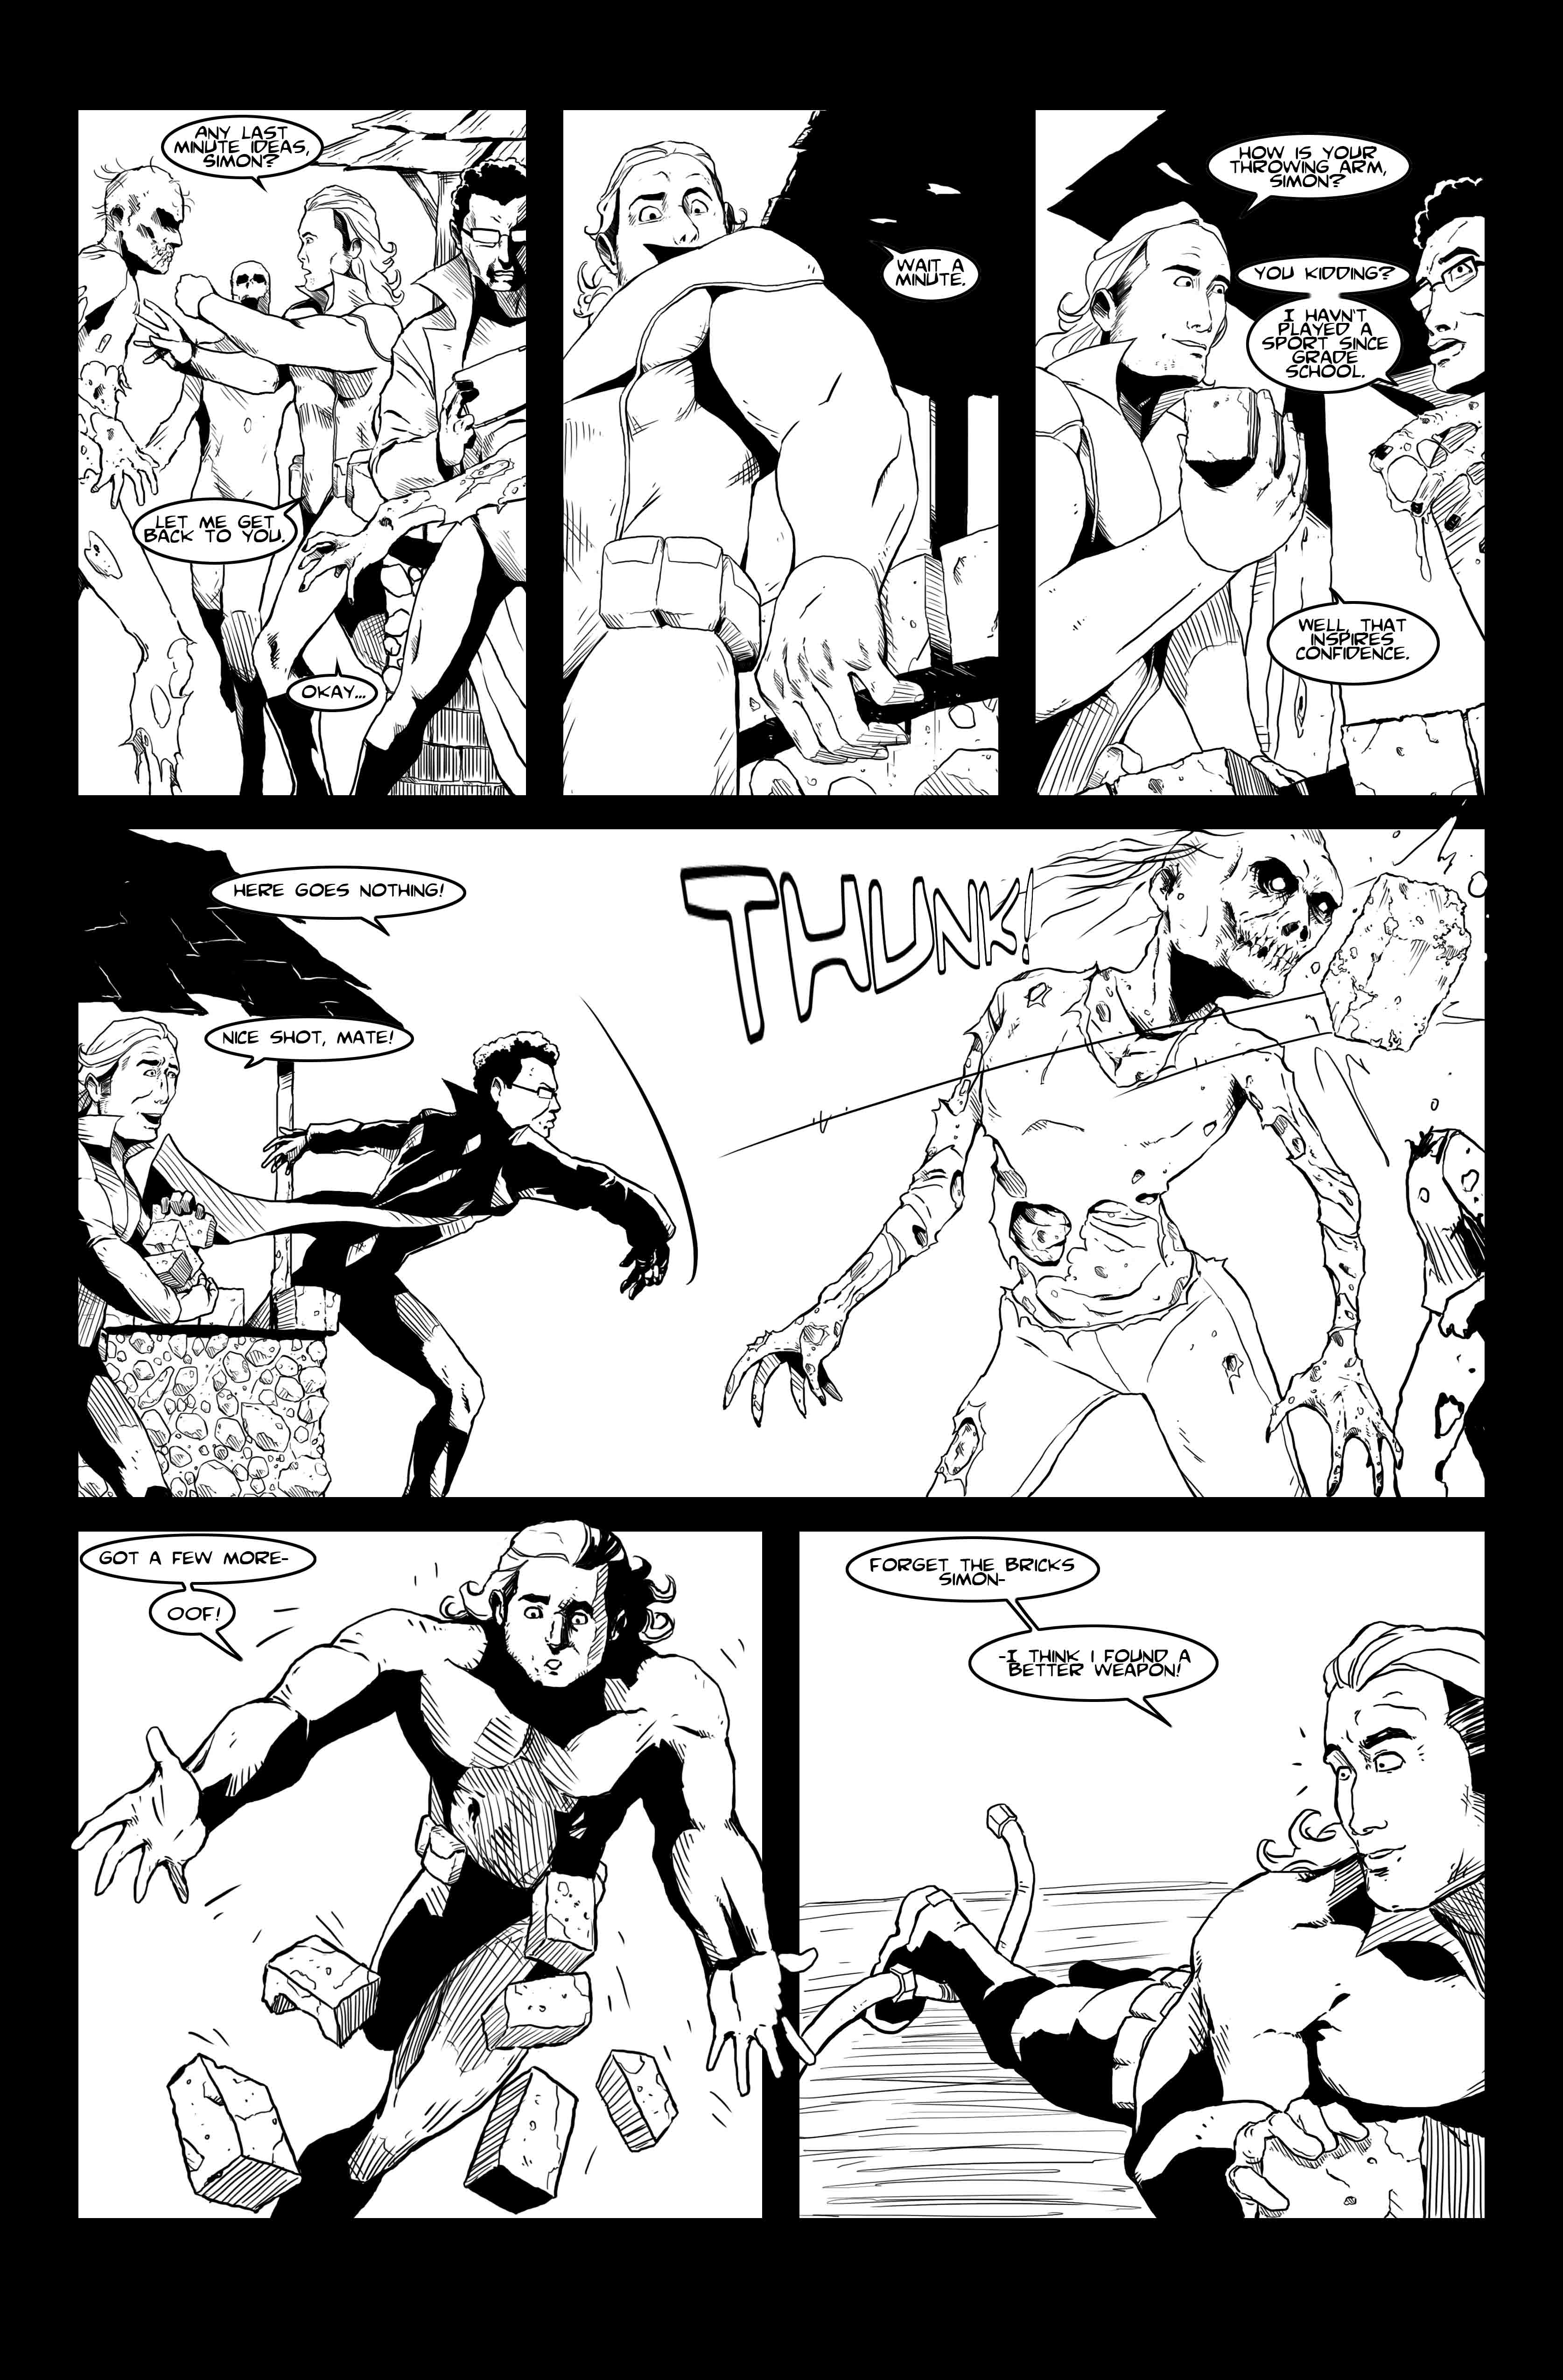 Let's Just Be Foes (issue 2, page 18)